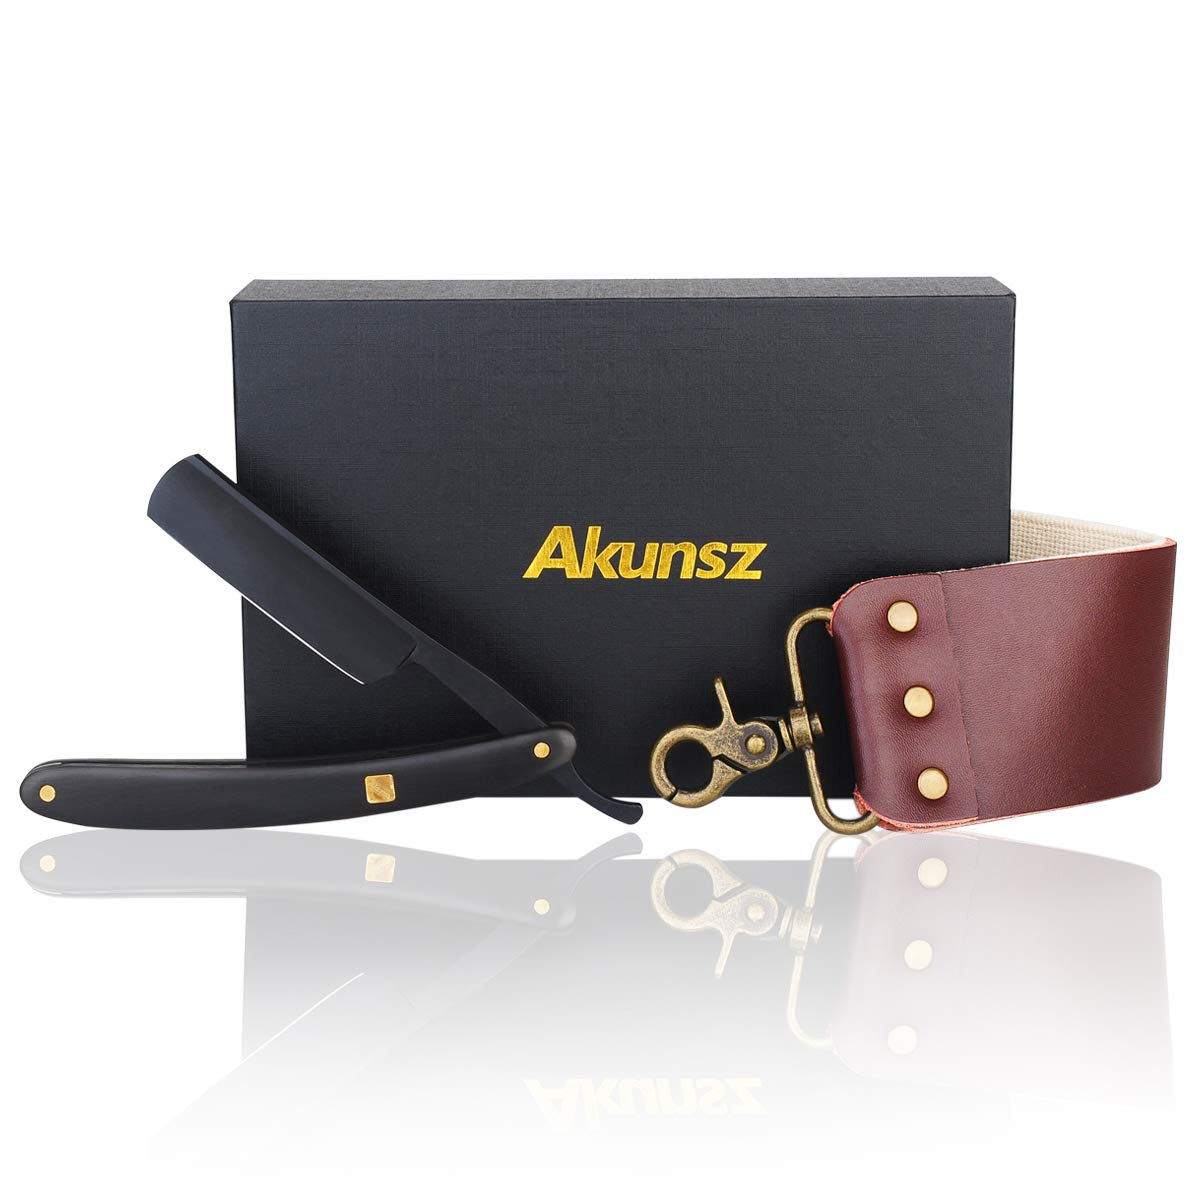 Straight Razor Shaving Kits for Men AKUNSZ Black Cutthroat Straight Razor with Strop Ebony Wooden Handle Ltd.